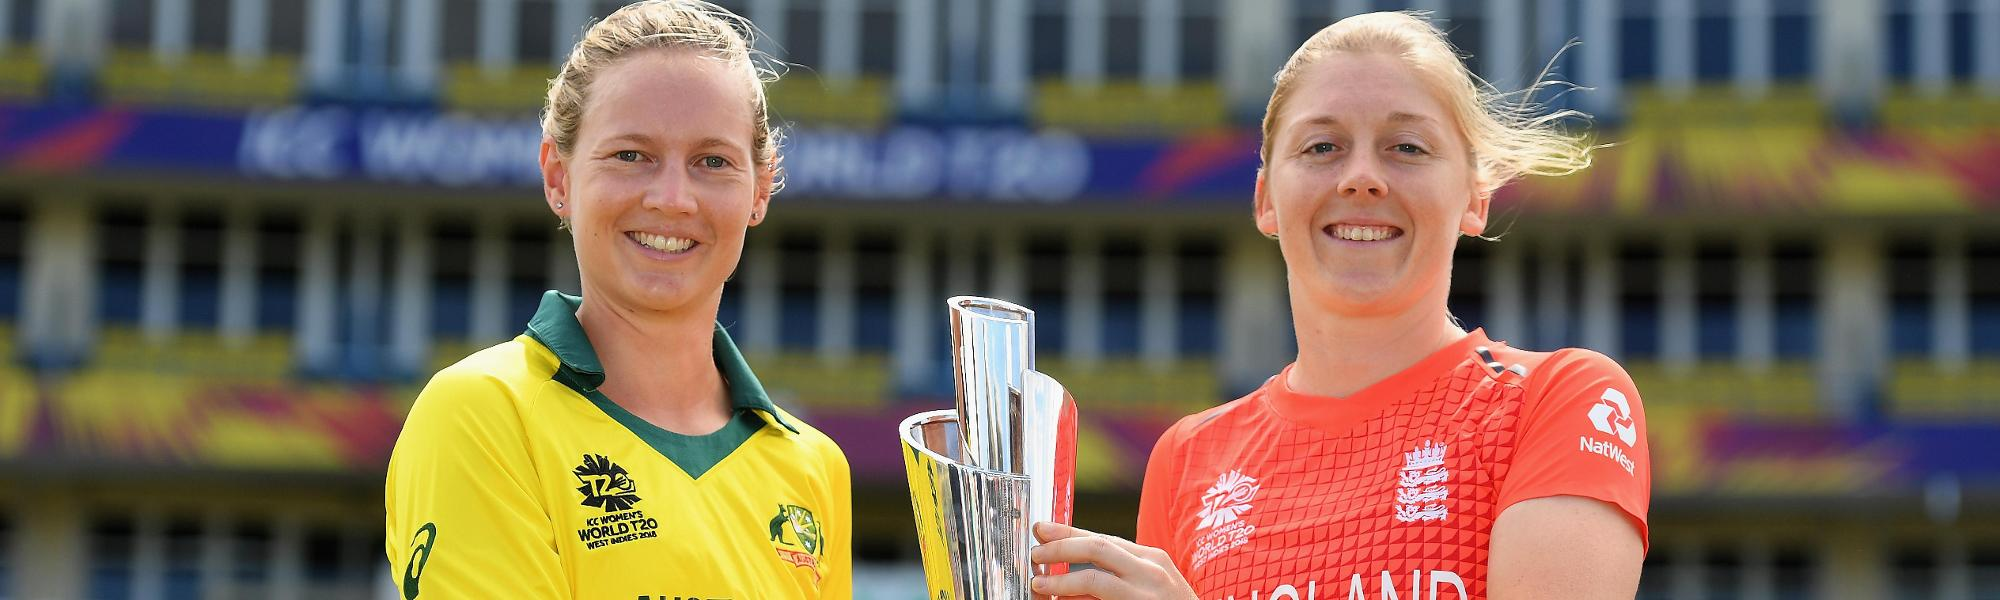 Meg Lanning, Captain of Australia and Heather Knight, Captain of England pose with the trophy during the ICC Women's World T20 Final 2018 - Previews at the Sir Vivian Richards Stadium on November 23, 2018 in Antigua, Antigua and Barbuda.